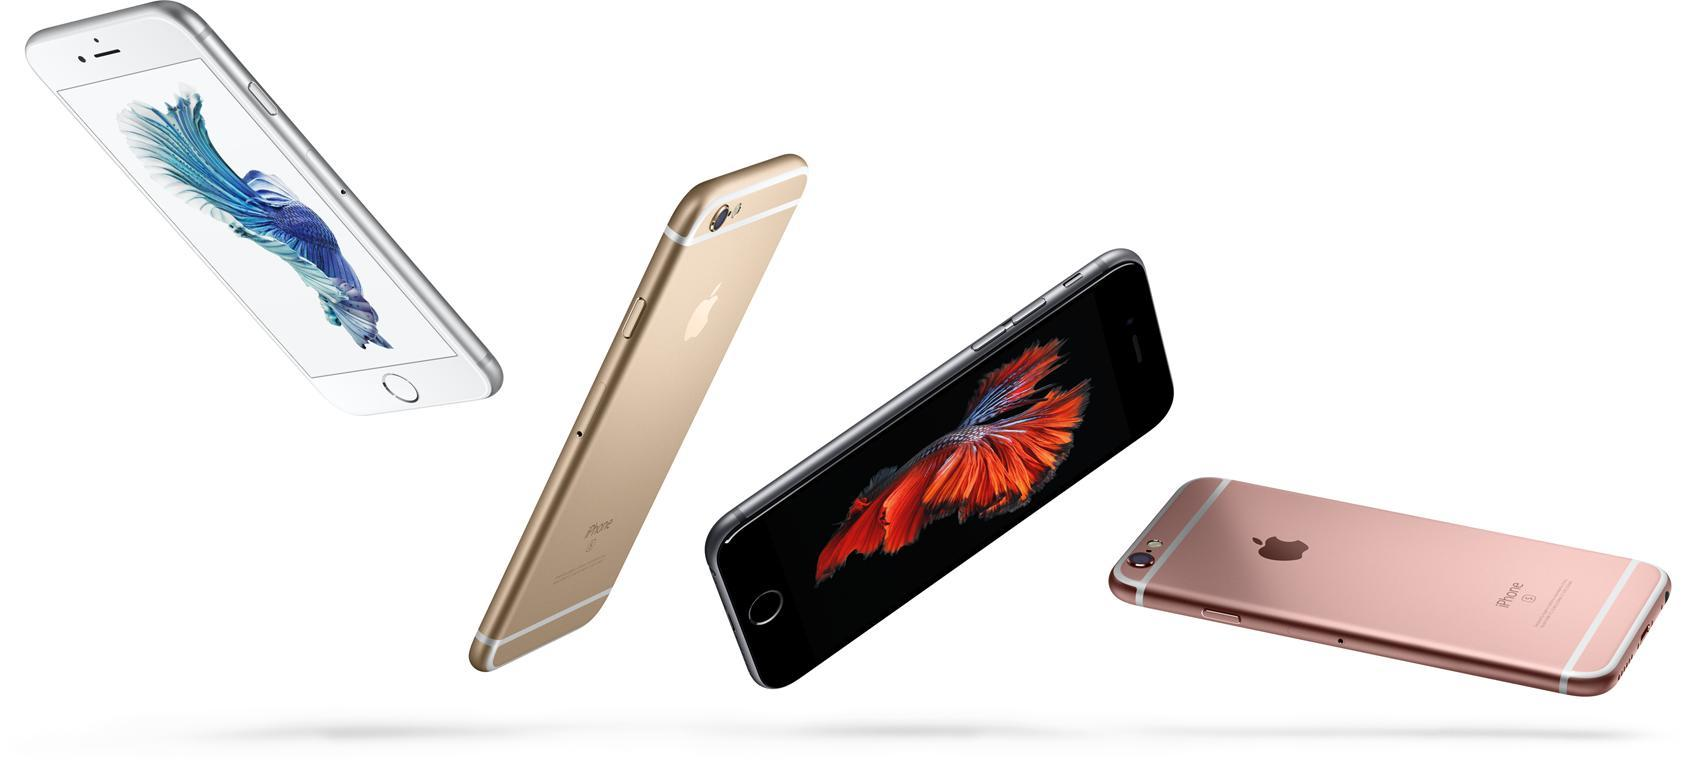 Image - iPhone 6s, The only thing that's changed is everything. Apple's lastest phone and their slogan. The on...